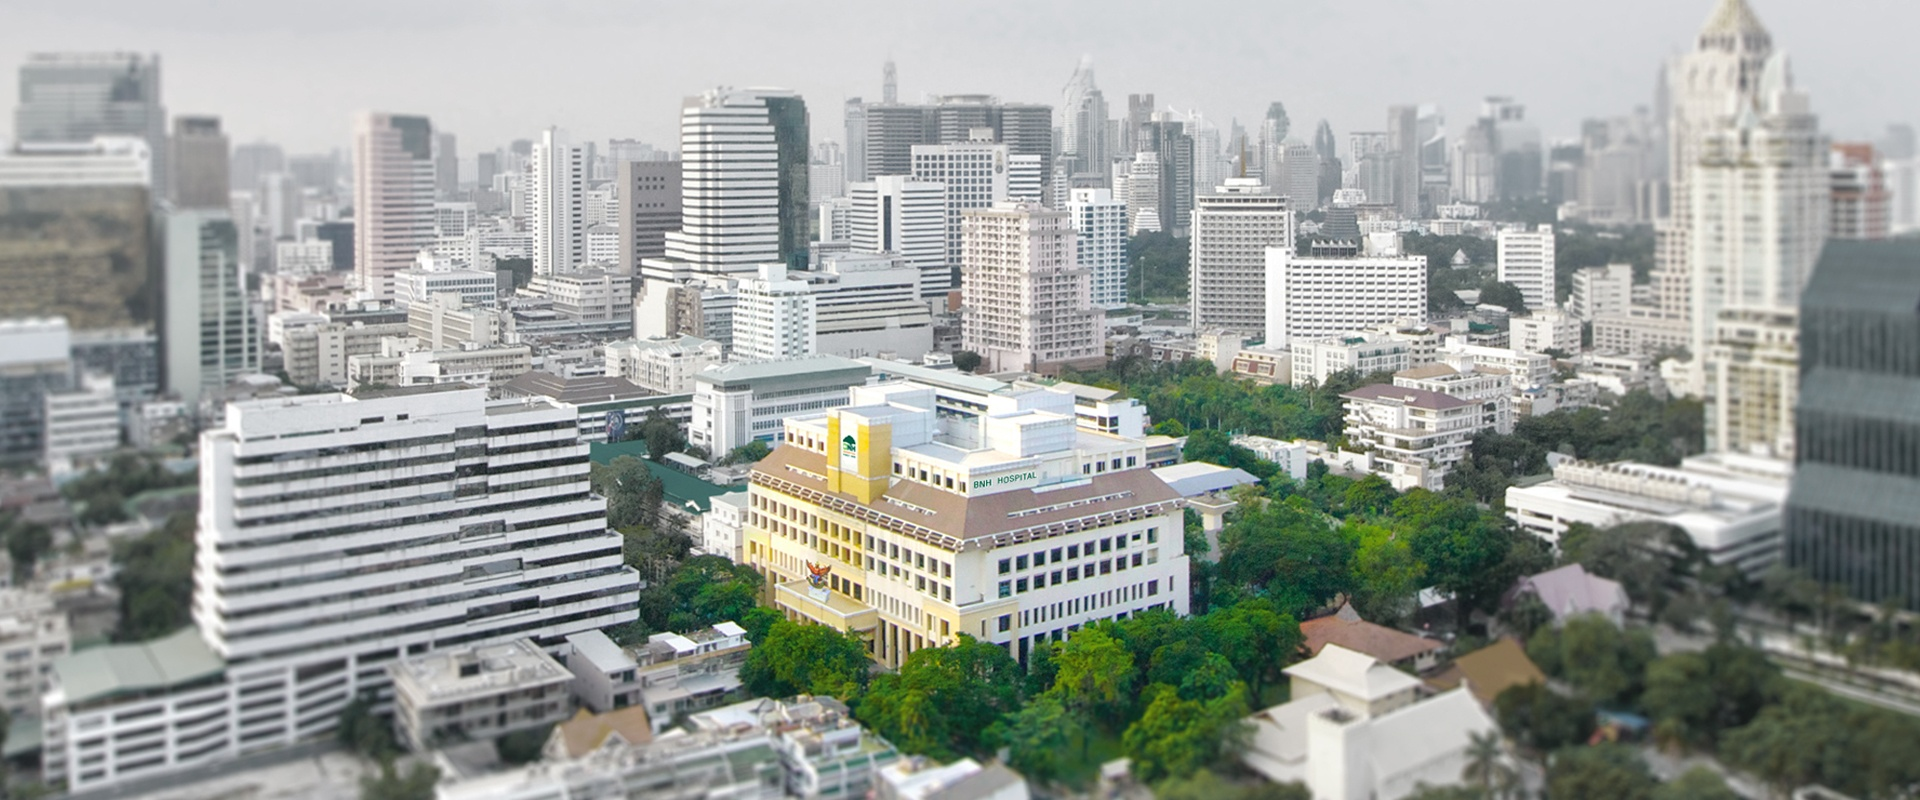 Leading Hospitals in Thailand: BNH Hospital